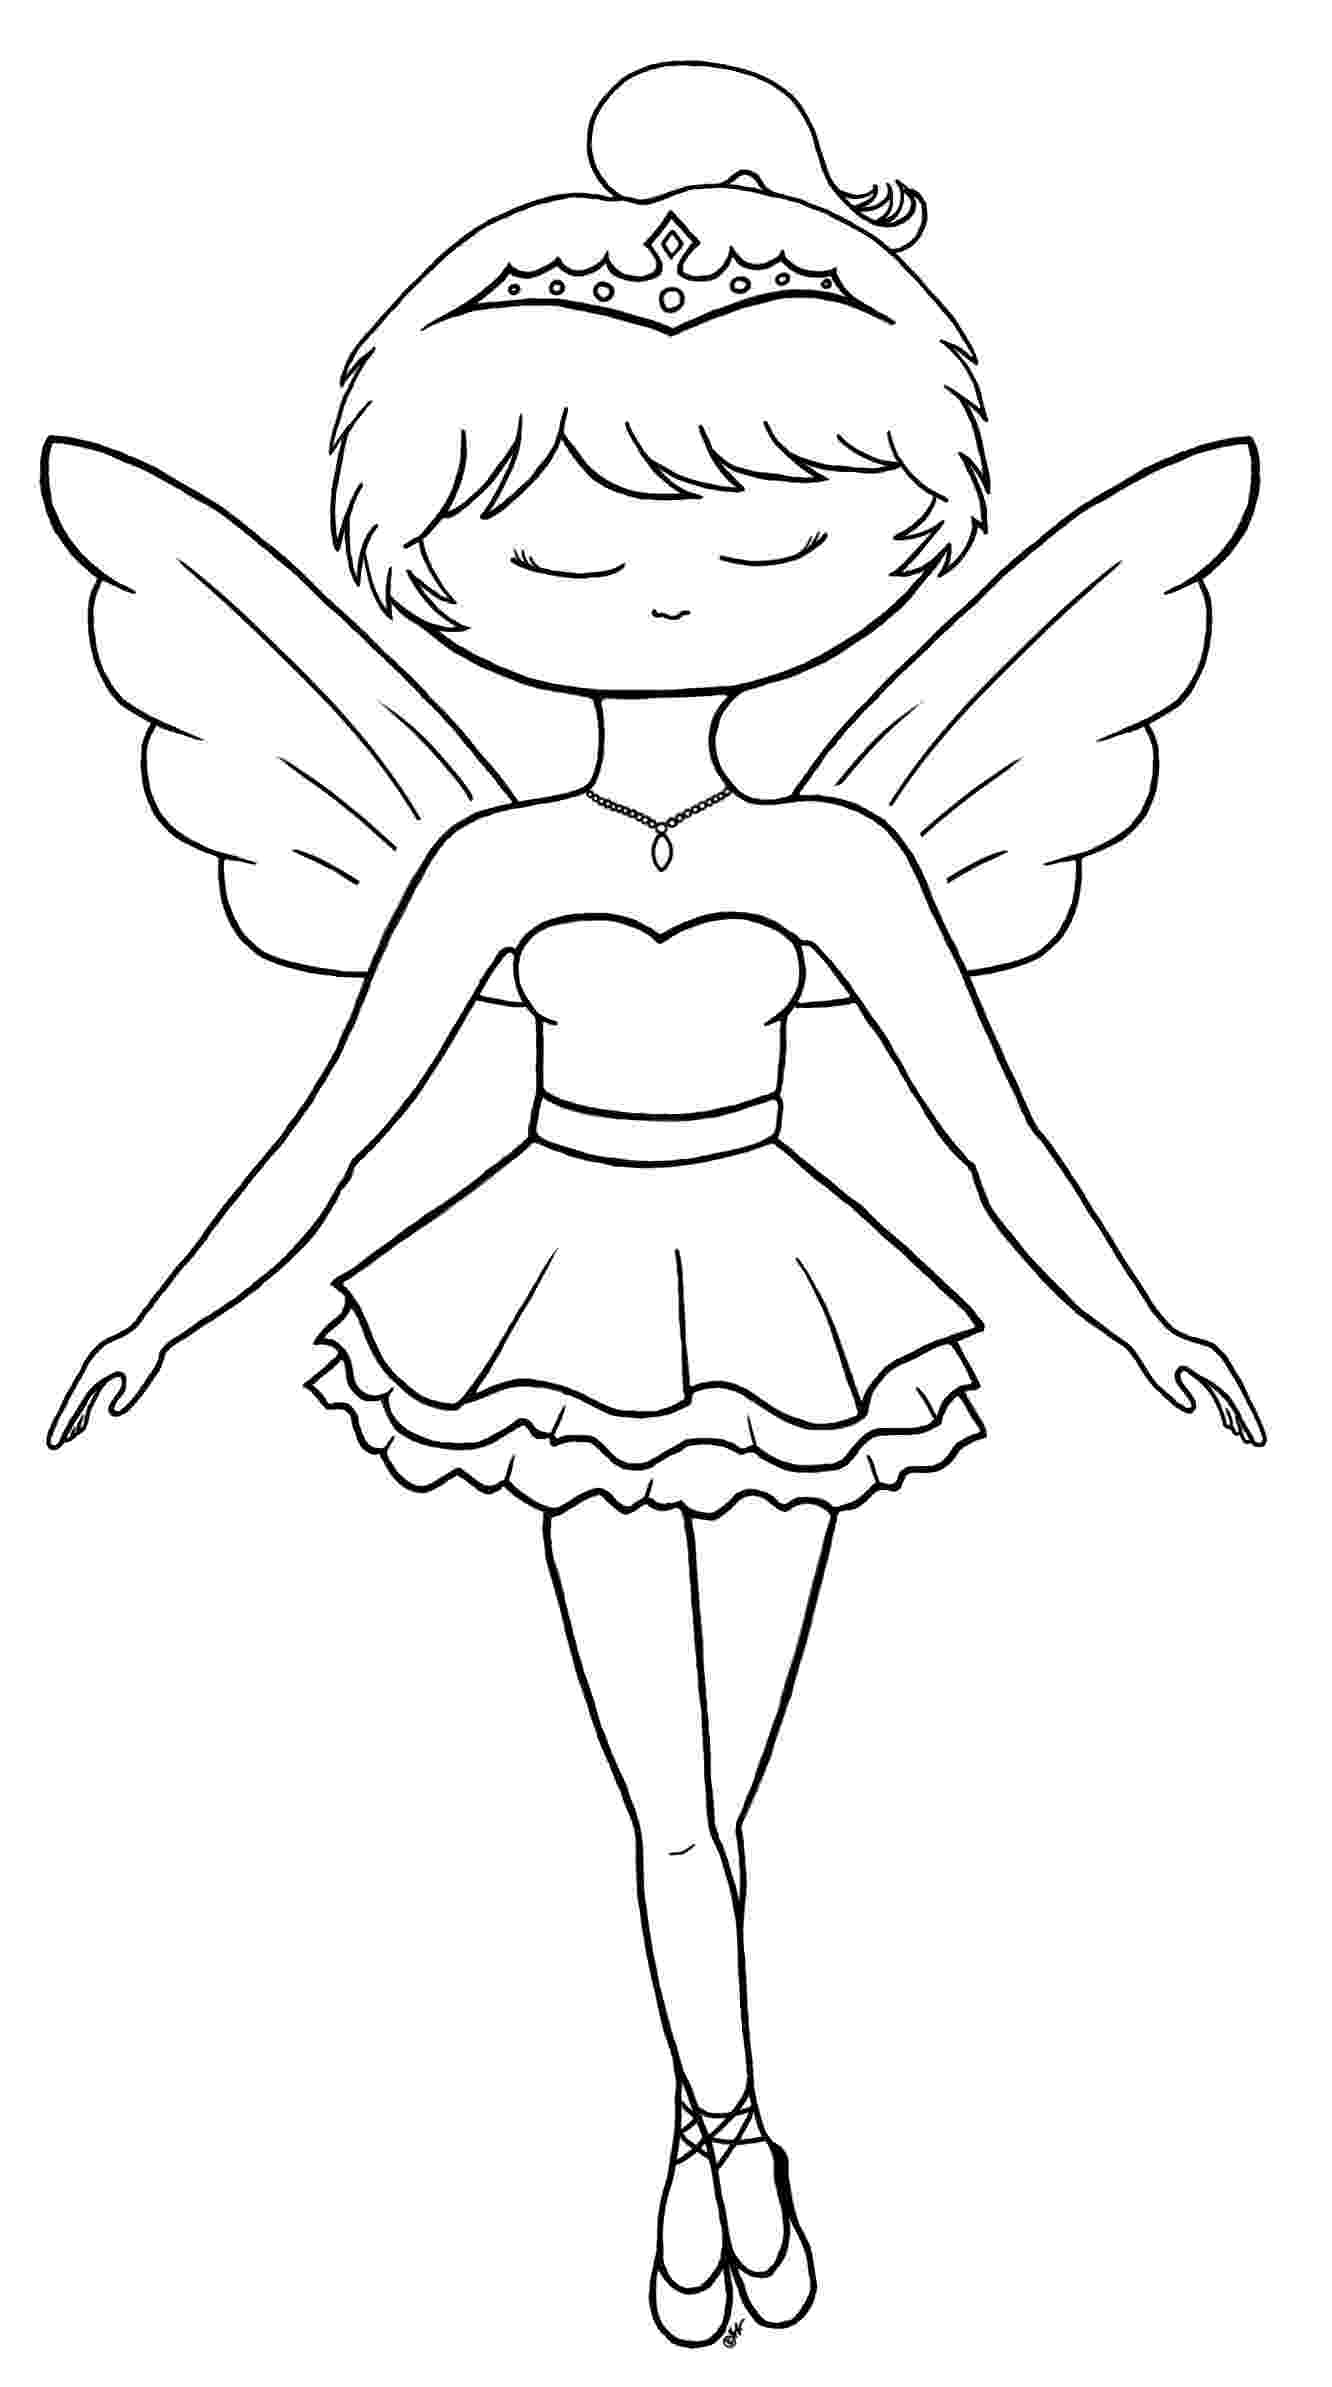 ballerina colouring pictures ballerina coloring pages for childrens printable for free colouring pictures ballerina